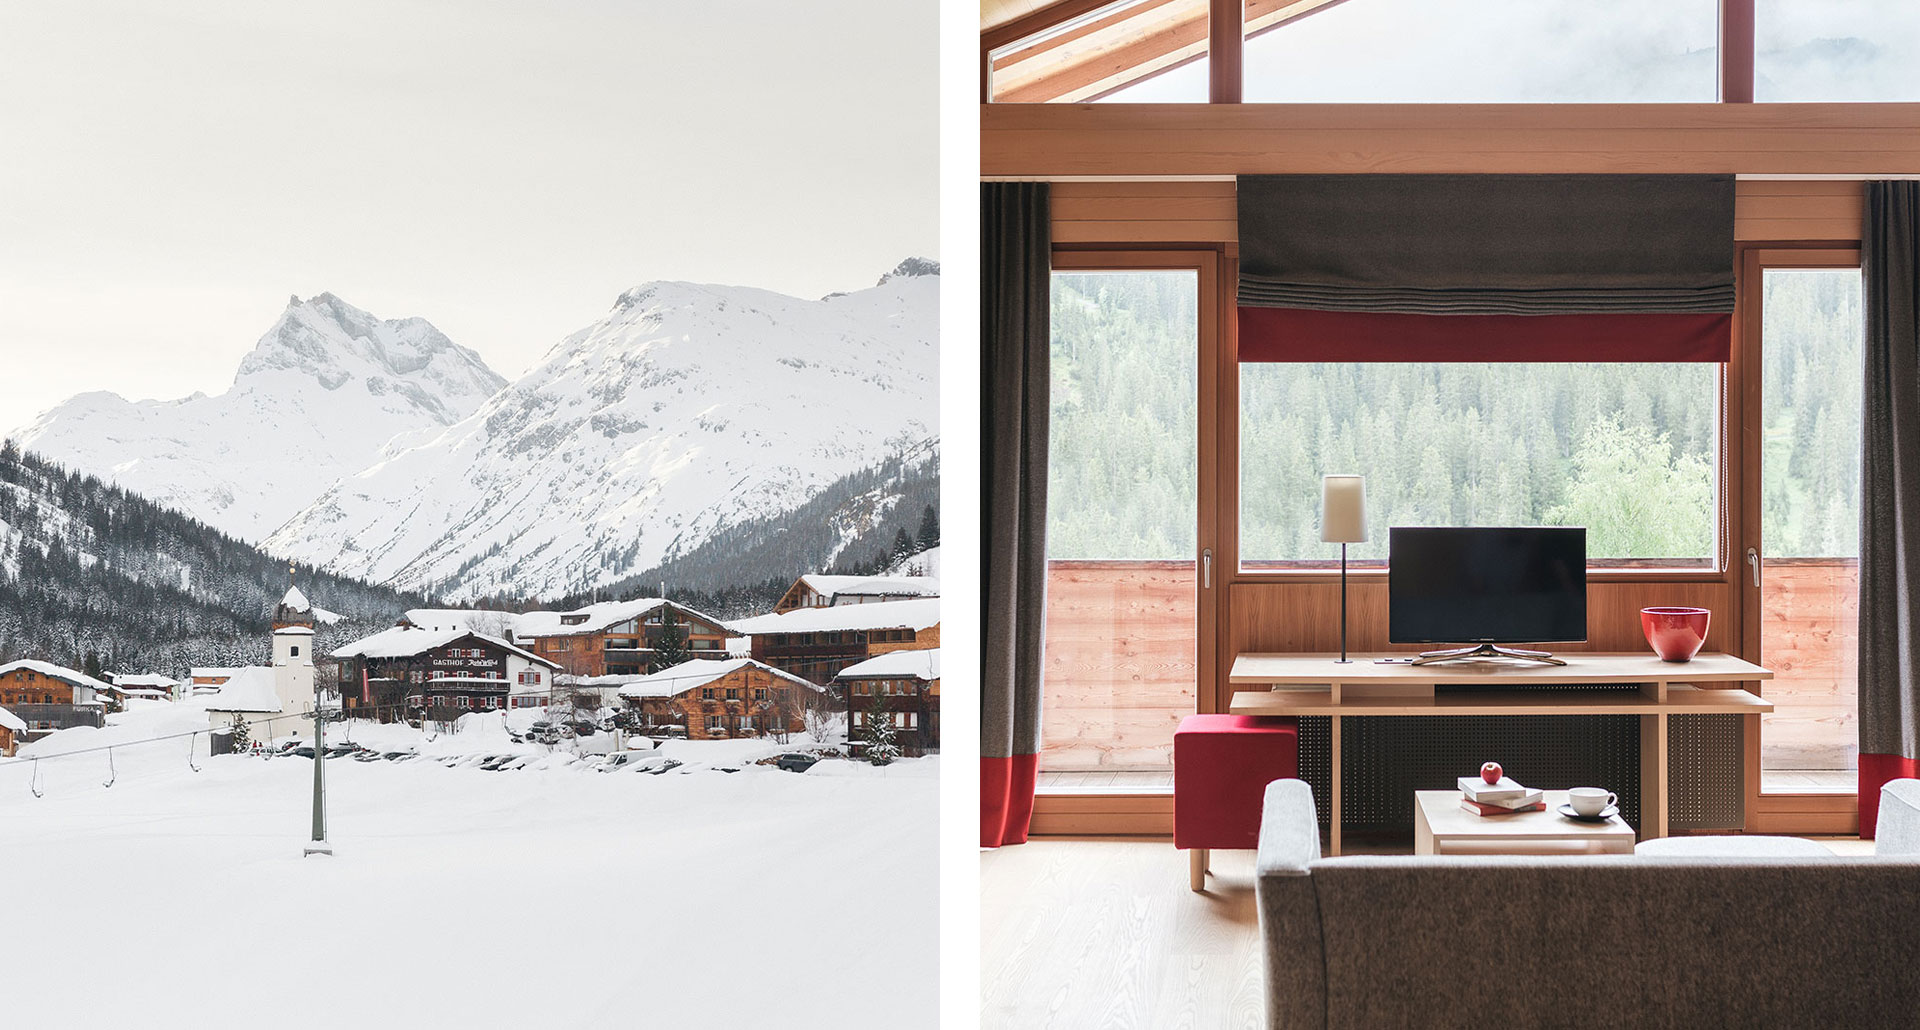 Walch's Rote Wand Gourmet Hotel - boutique hotel in Lech am Arlberg